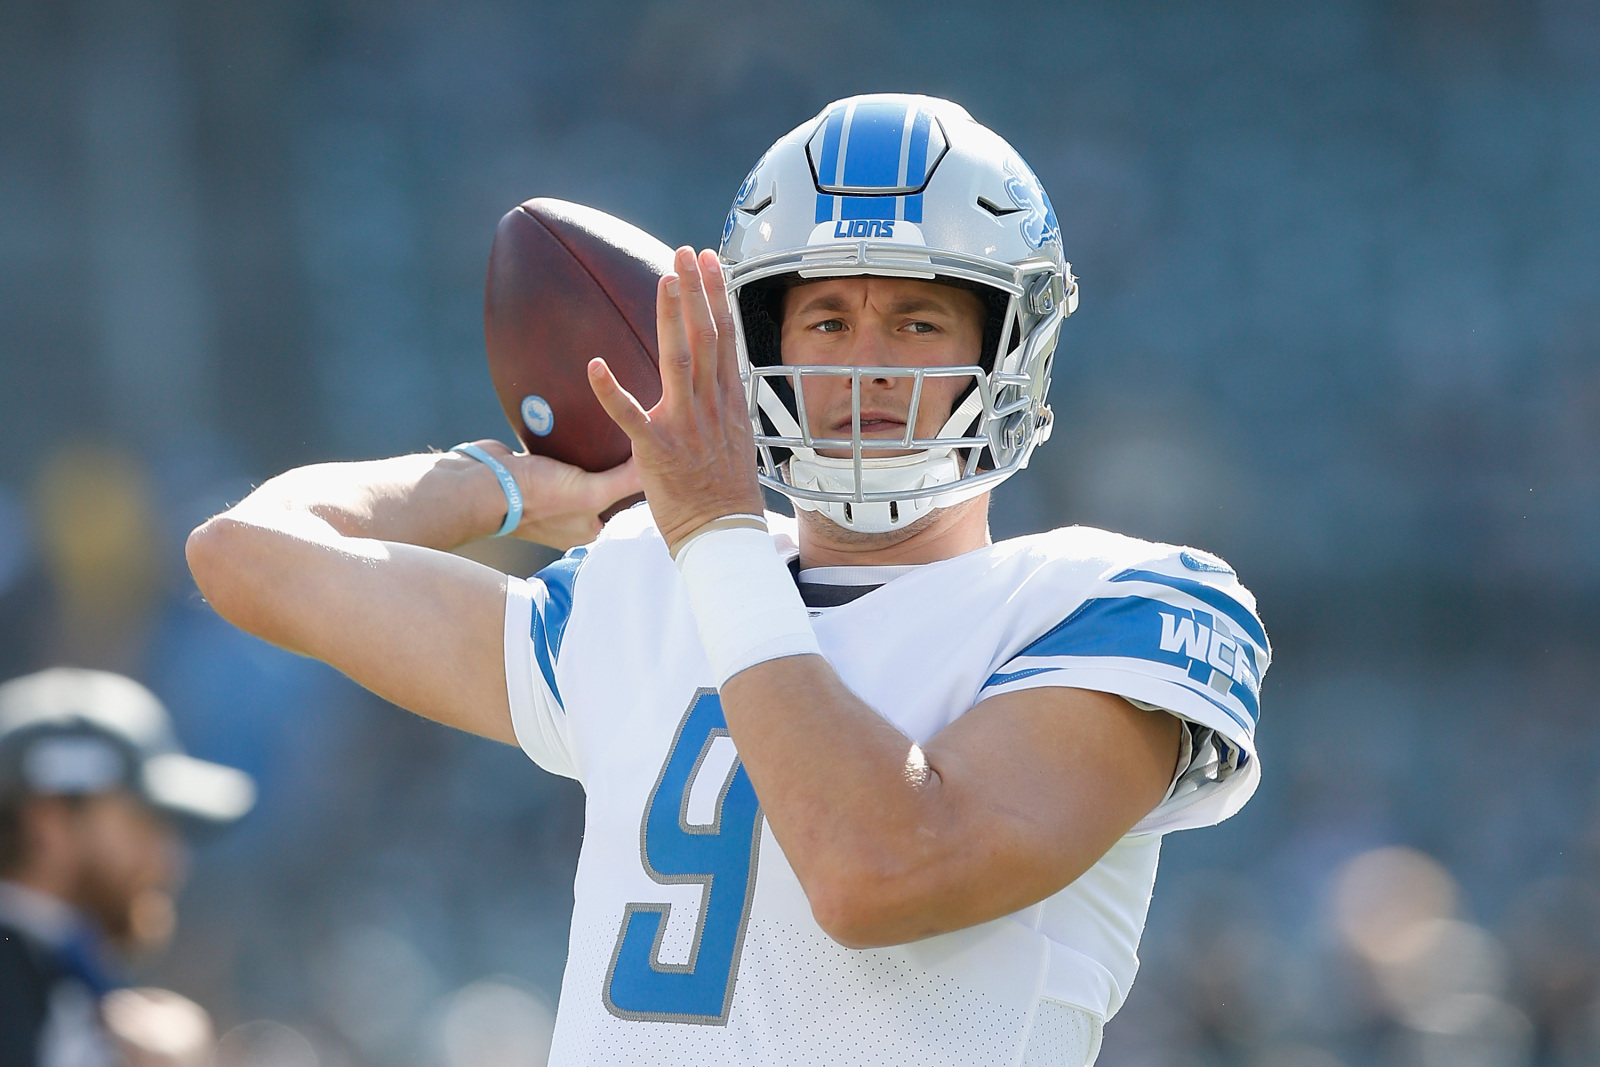 Detroit Lions: Stafford family continues to give back to Detroit community